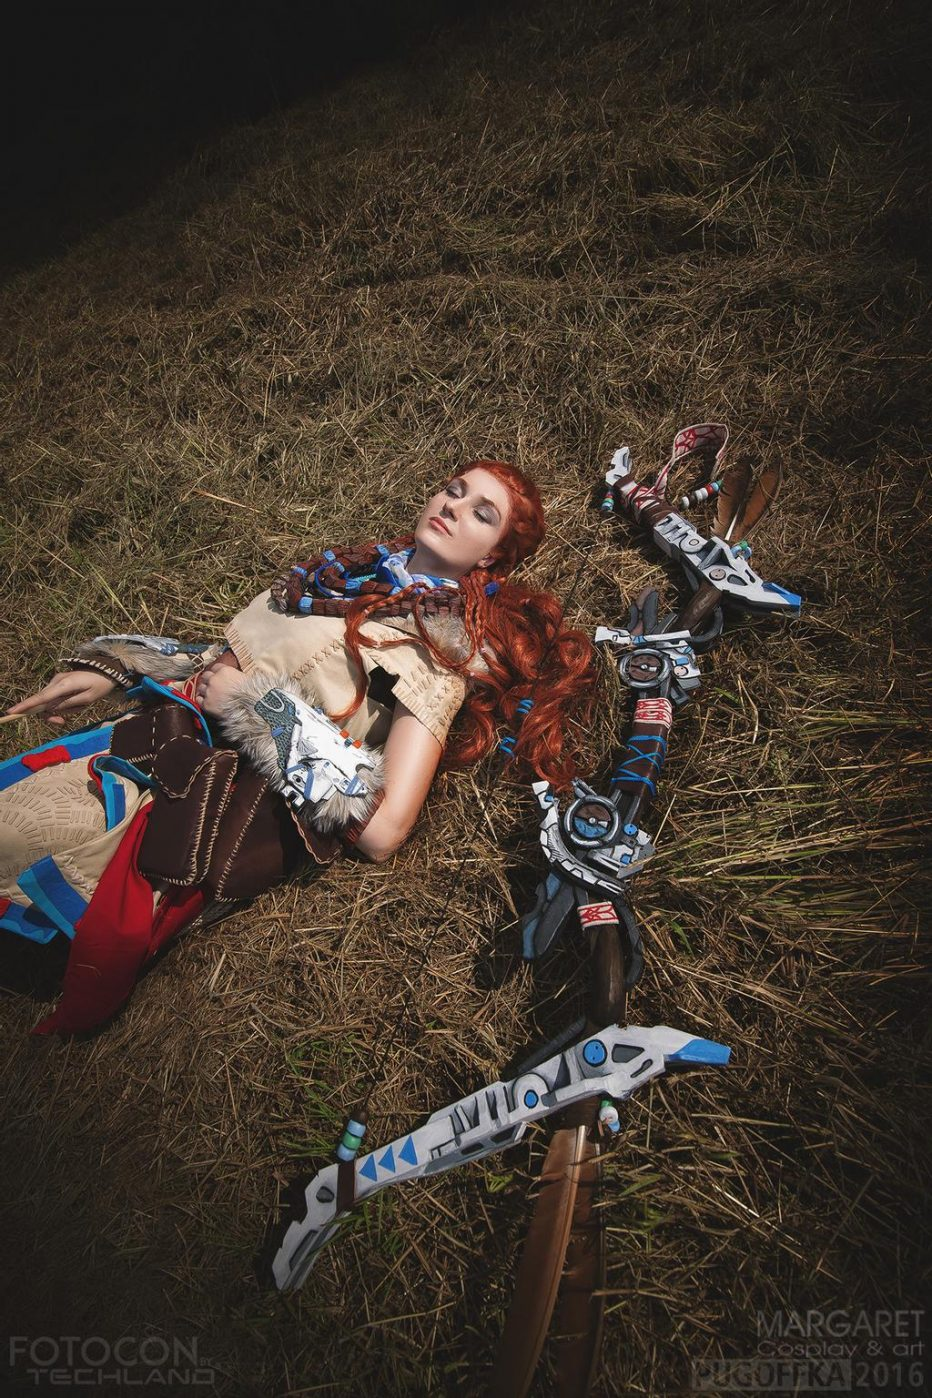 Horizon-Zero-Dawn-Aloy-Cosplay-Gamers-Heroes-2.jpg